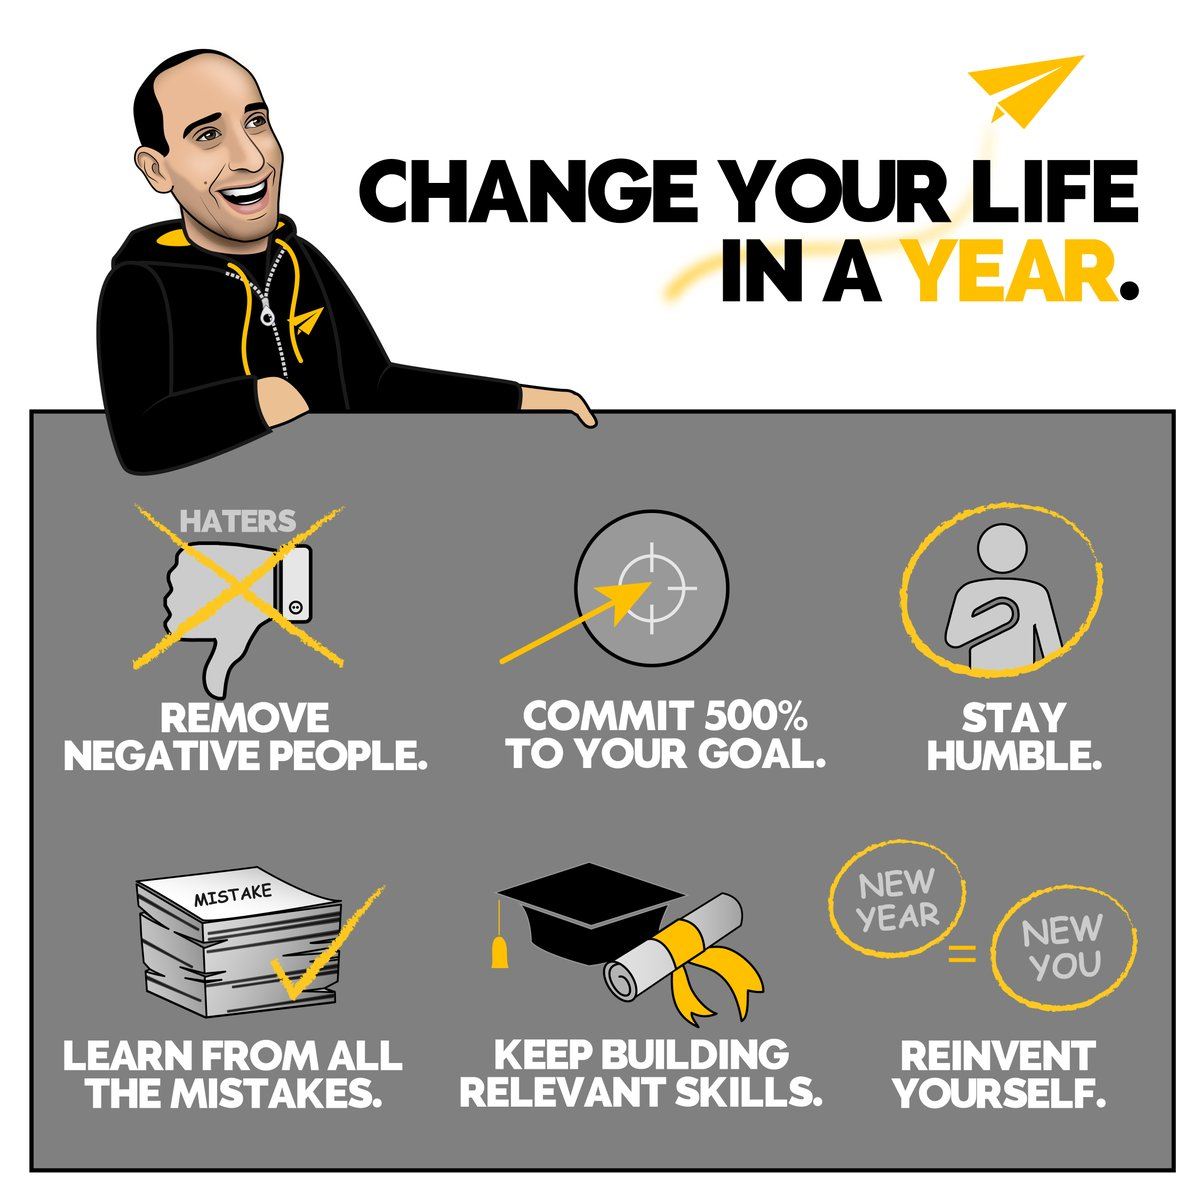 Drop a 'YES' below if you need to embrace one of these points! 👇  Want to change your life in a year? Here's how you can do it. _____________________________________  #bestadvice #daretobedifferent #changeyourlife https://t.co/AmSRomA4Zk